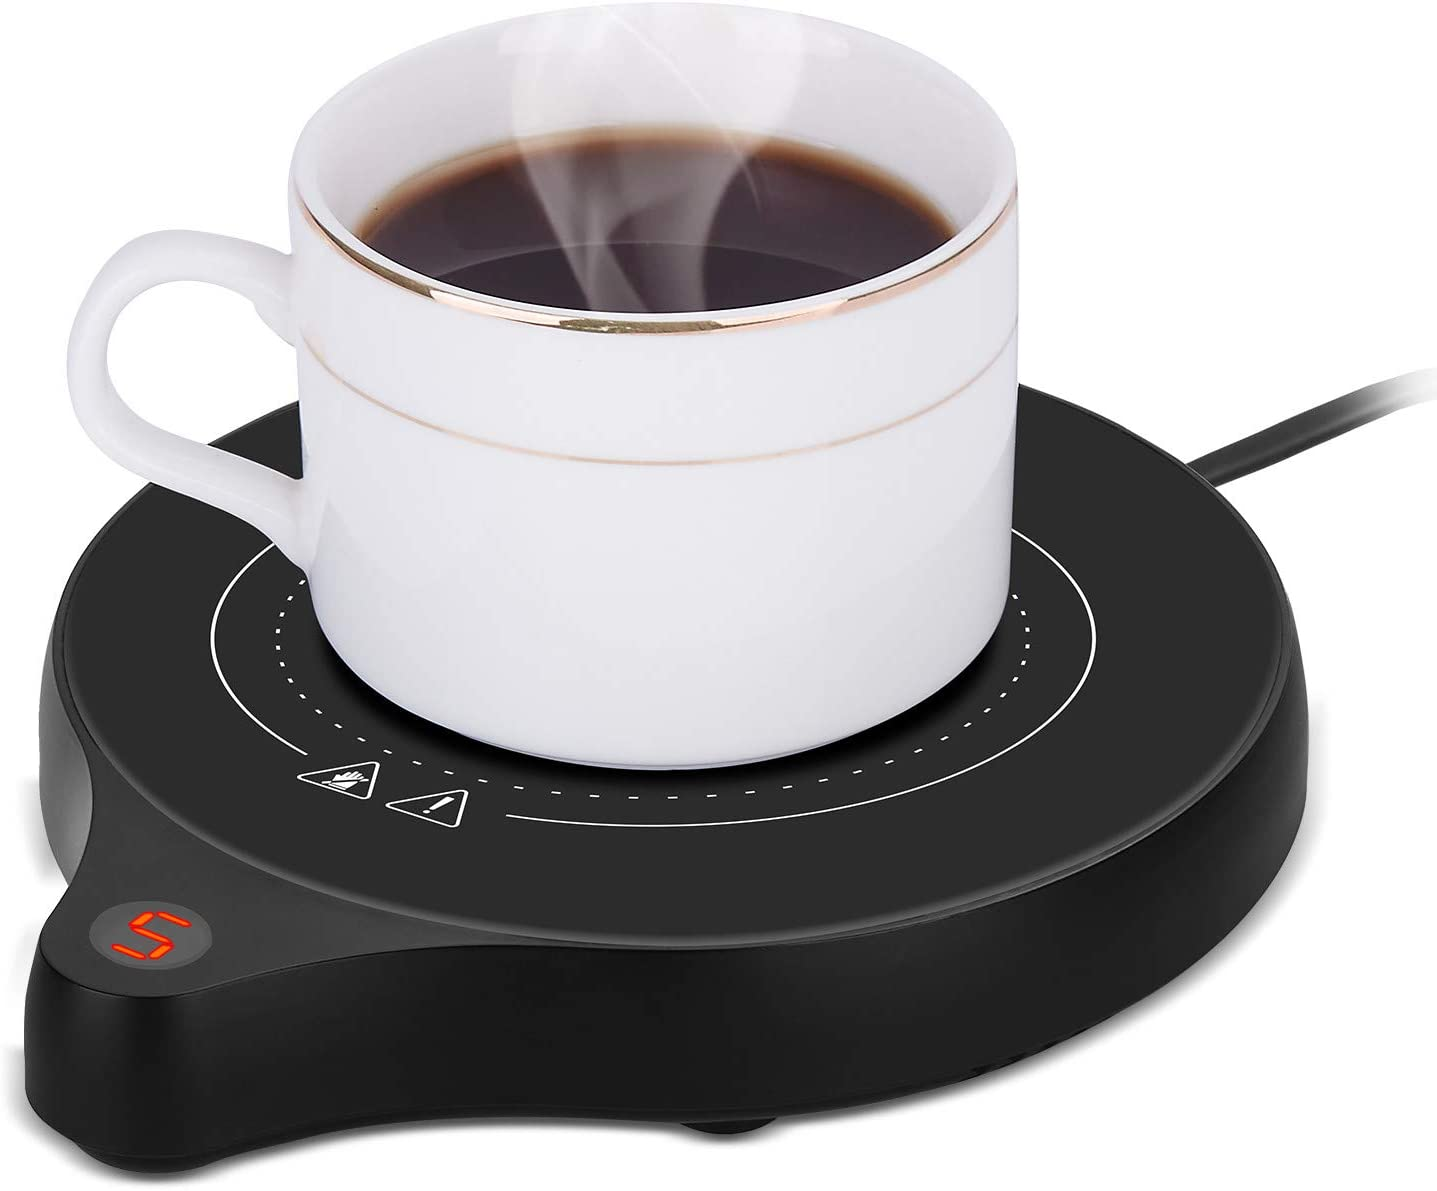 2020 New Coffee Mug Warmer and Office Warmer, Electric Beverage Warmer with 5 Temperature Settings, Coffee Warmer for Cocoa Milk Milk, Auto On/Off Gravity-induction Mug Warmer for Office Desk Use, Candle Wax Cup Warmer Heating Plate (Up To 176°F/80°C)